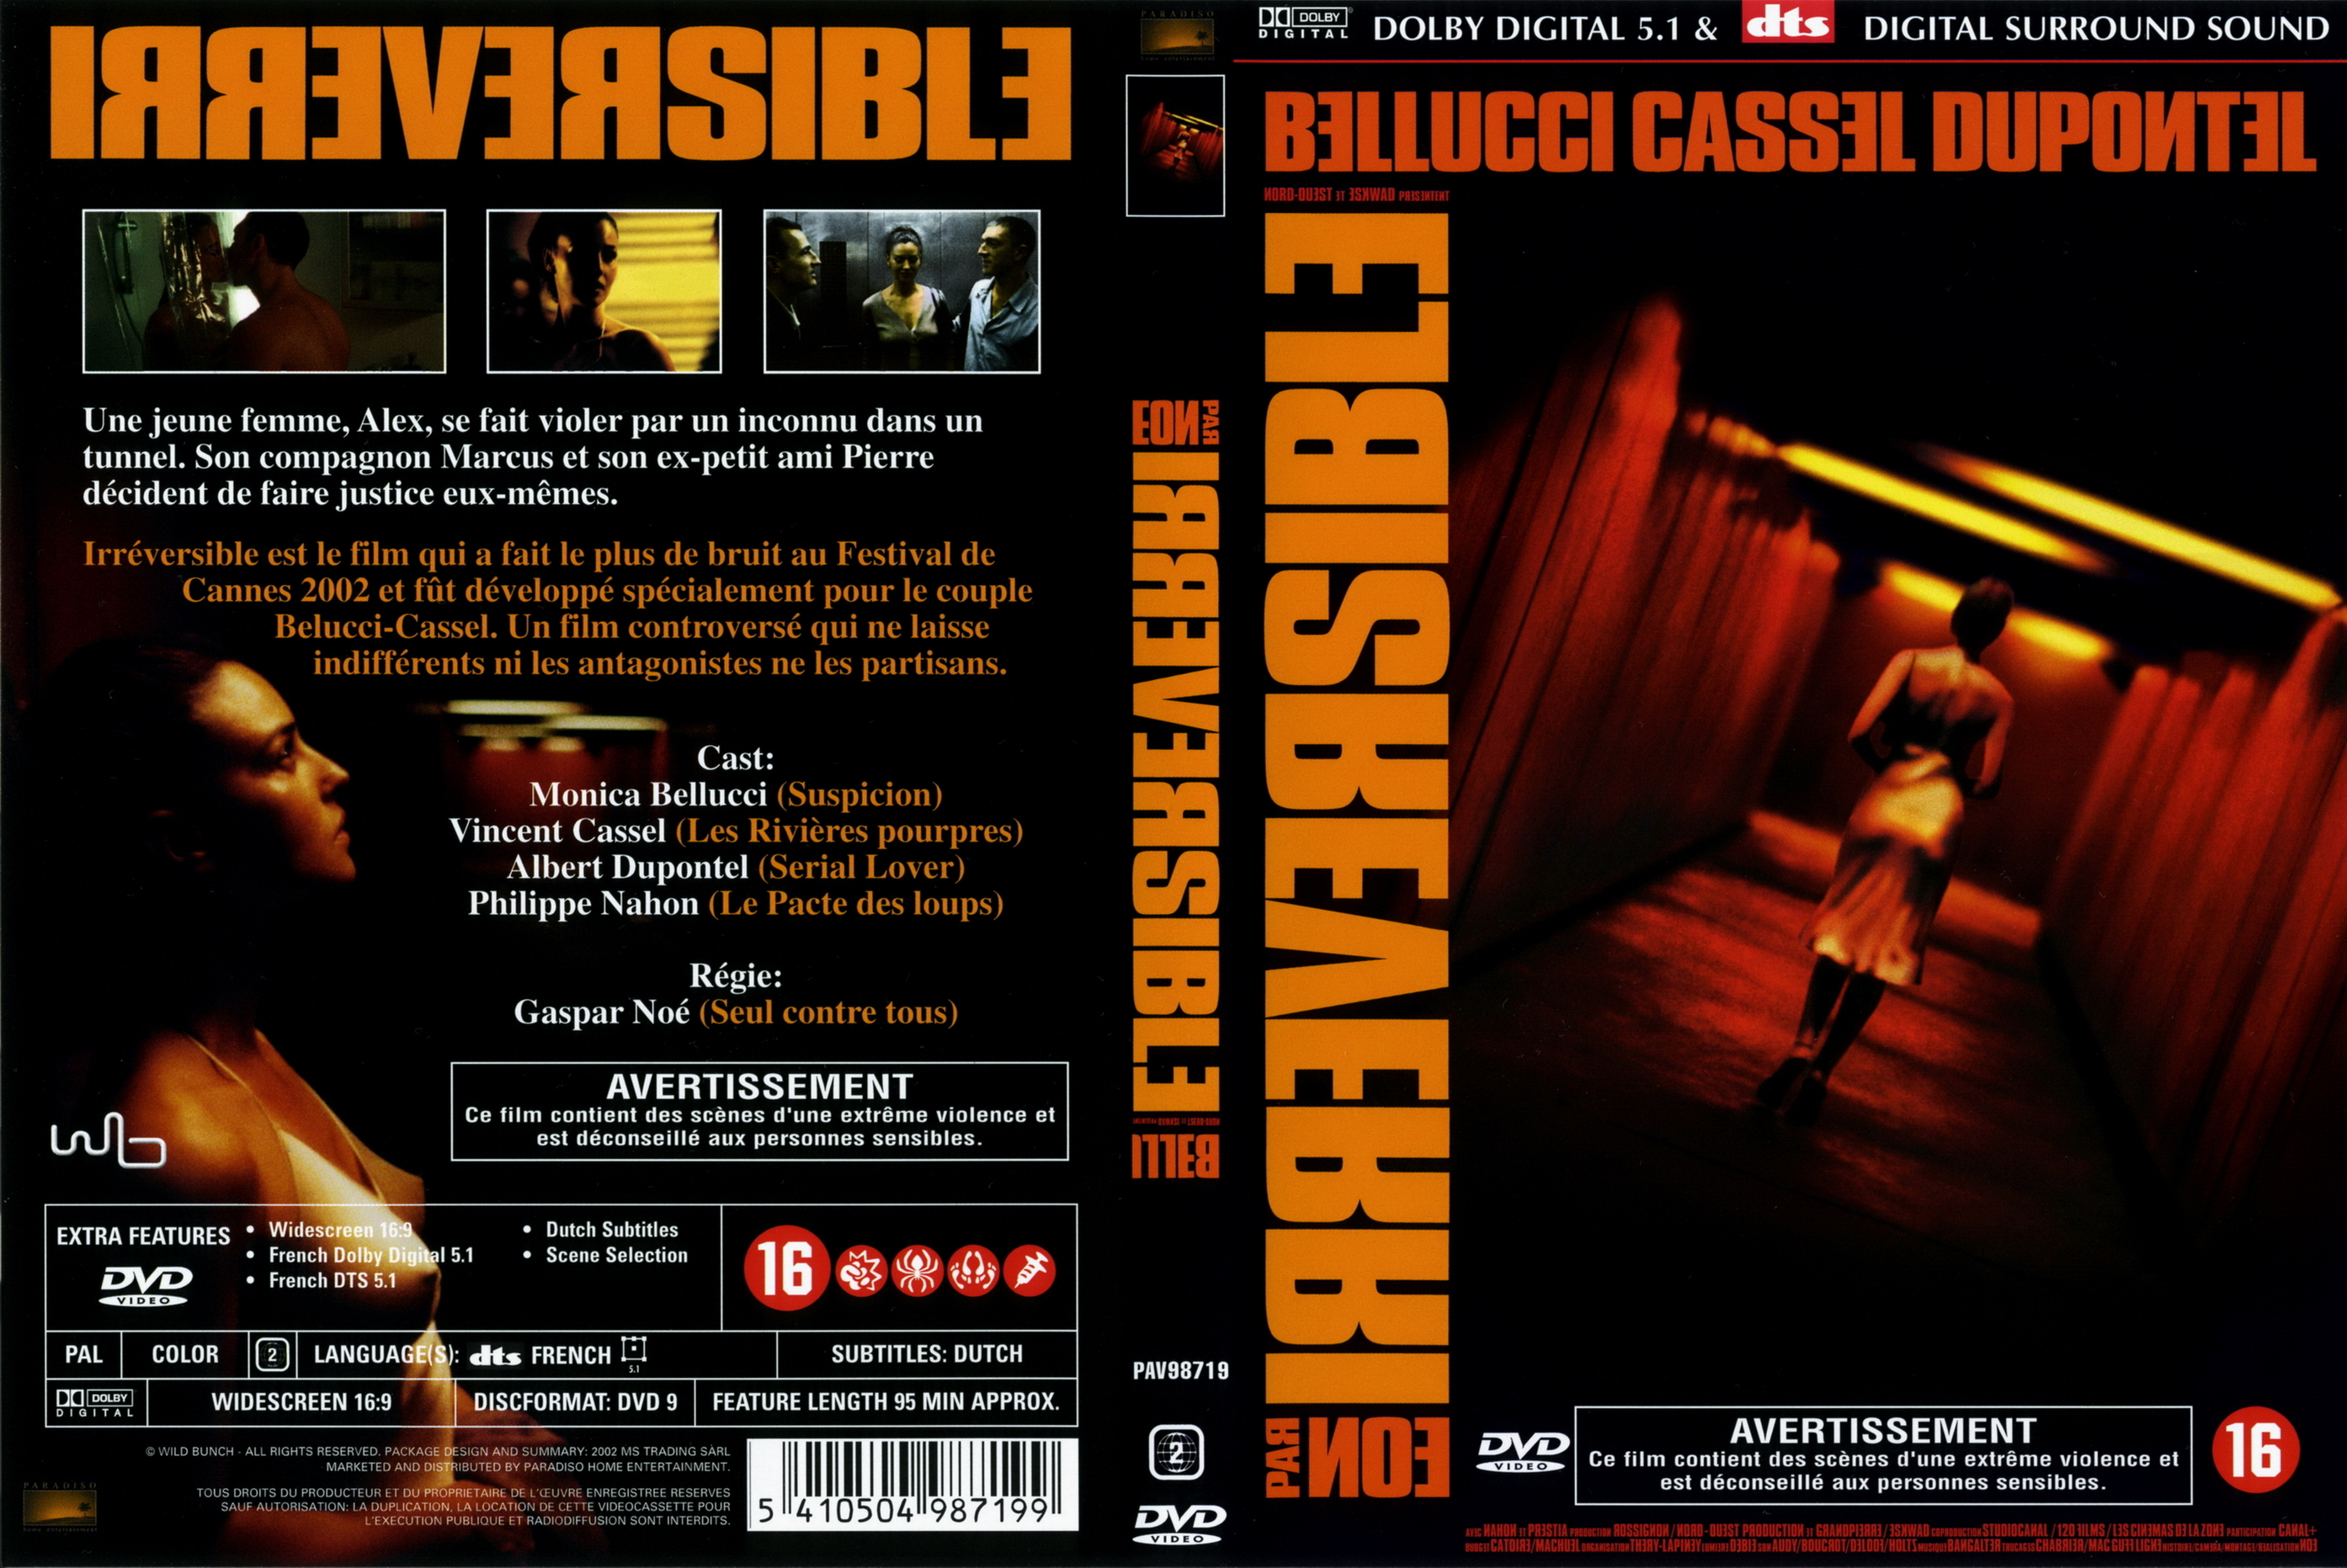 Irreversible Filme Cheap pinbuh aarts on vaege films - http://www.cdcovers.cc